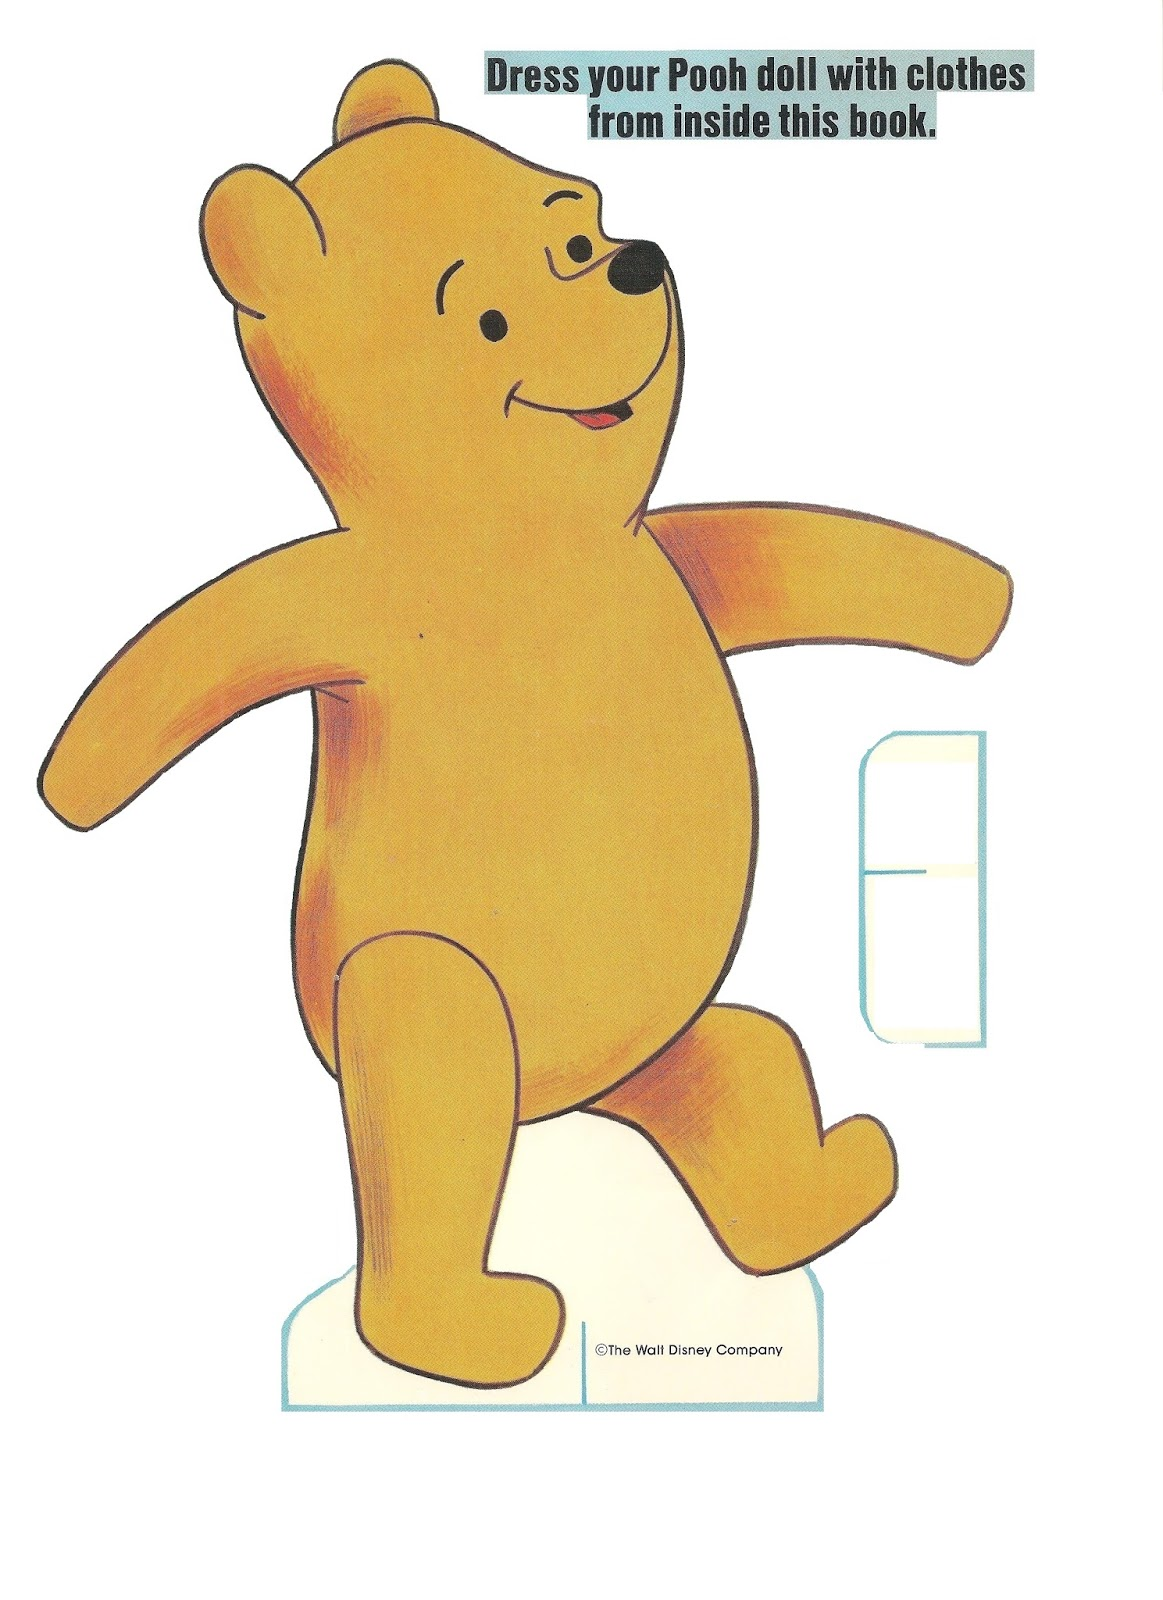 winnie the pooh thesis Susan megan, what a great essay on pooh in the zsr collection thank you for bringing context to the works in the collection.